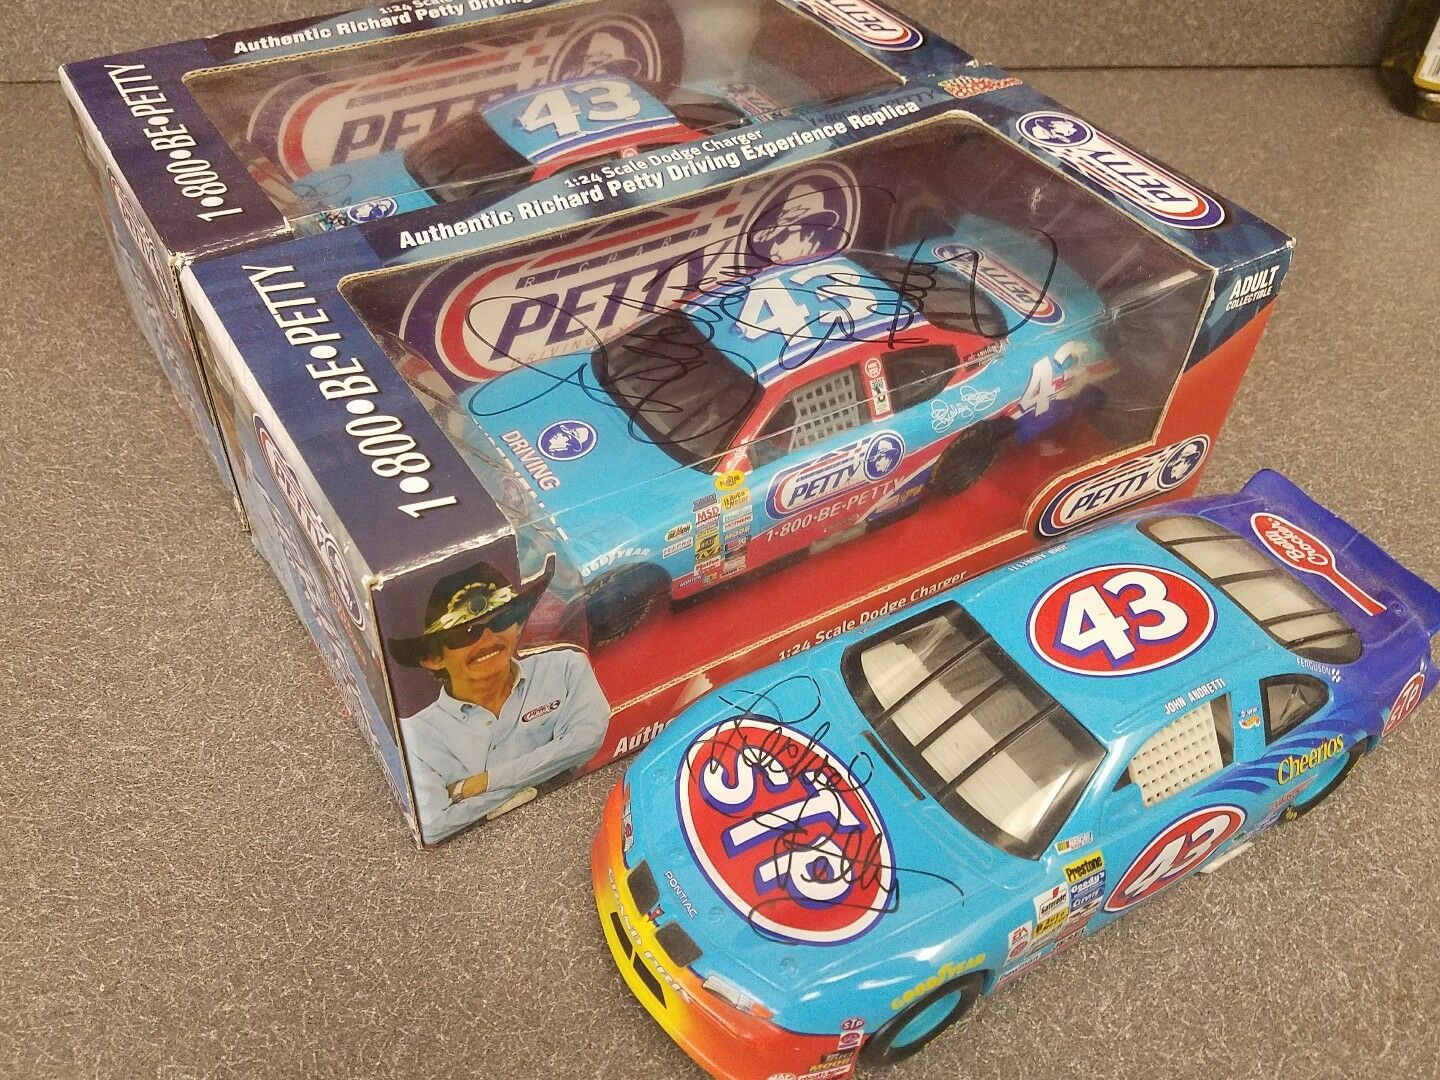 3 Richard petty autographed diecasts